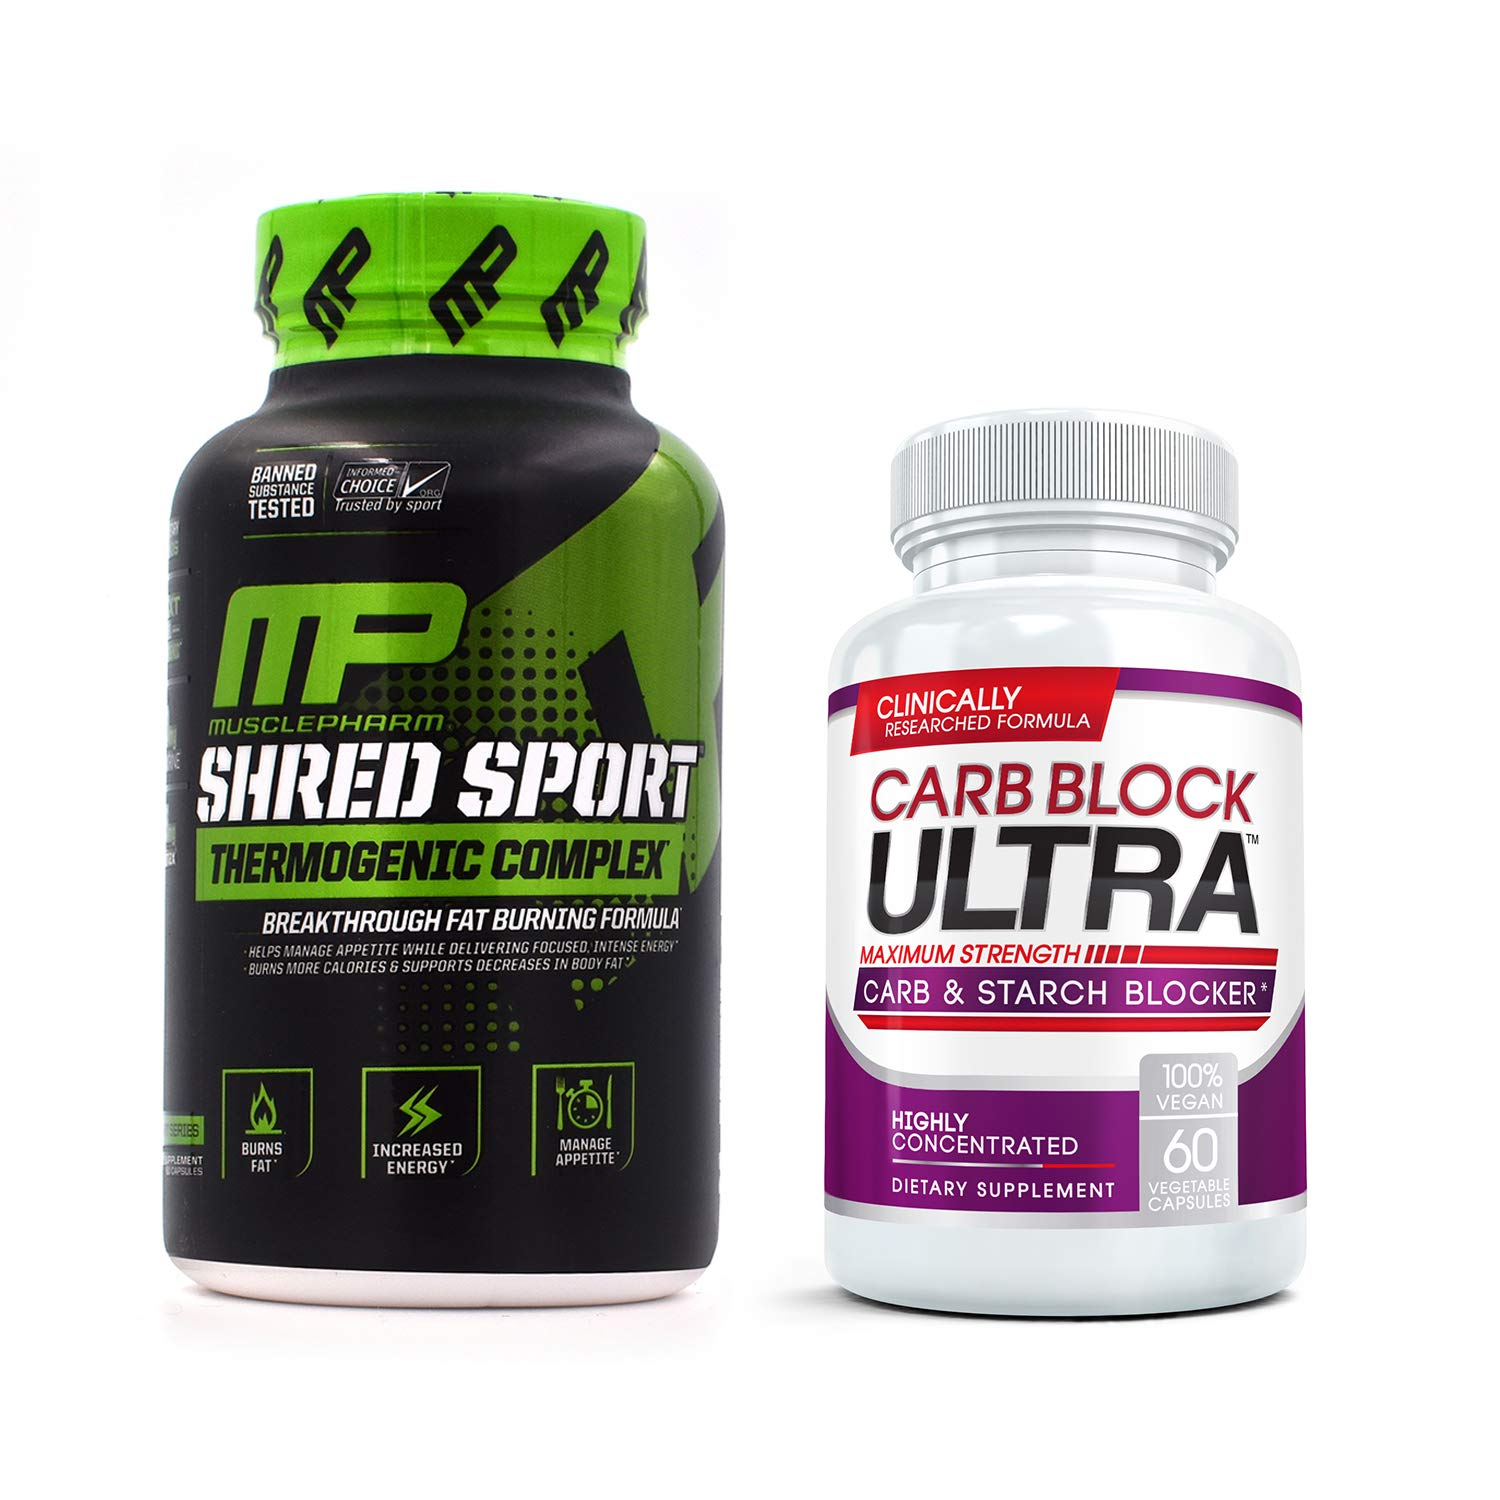 Shred Sport (60 Capsules) & Carb Block Ultra (2 Bottles) - Professional Strength Fat Burning, Weight Loss Package. Double Your Results!